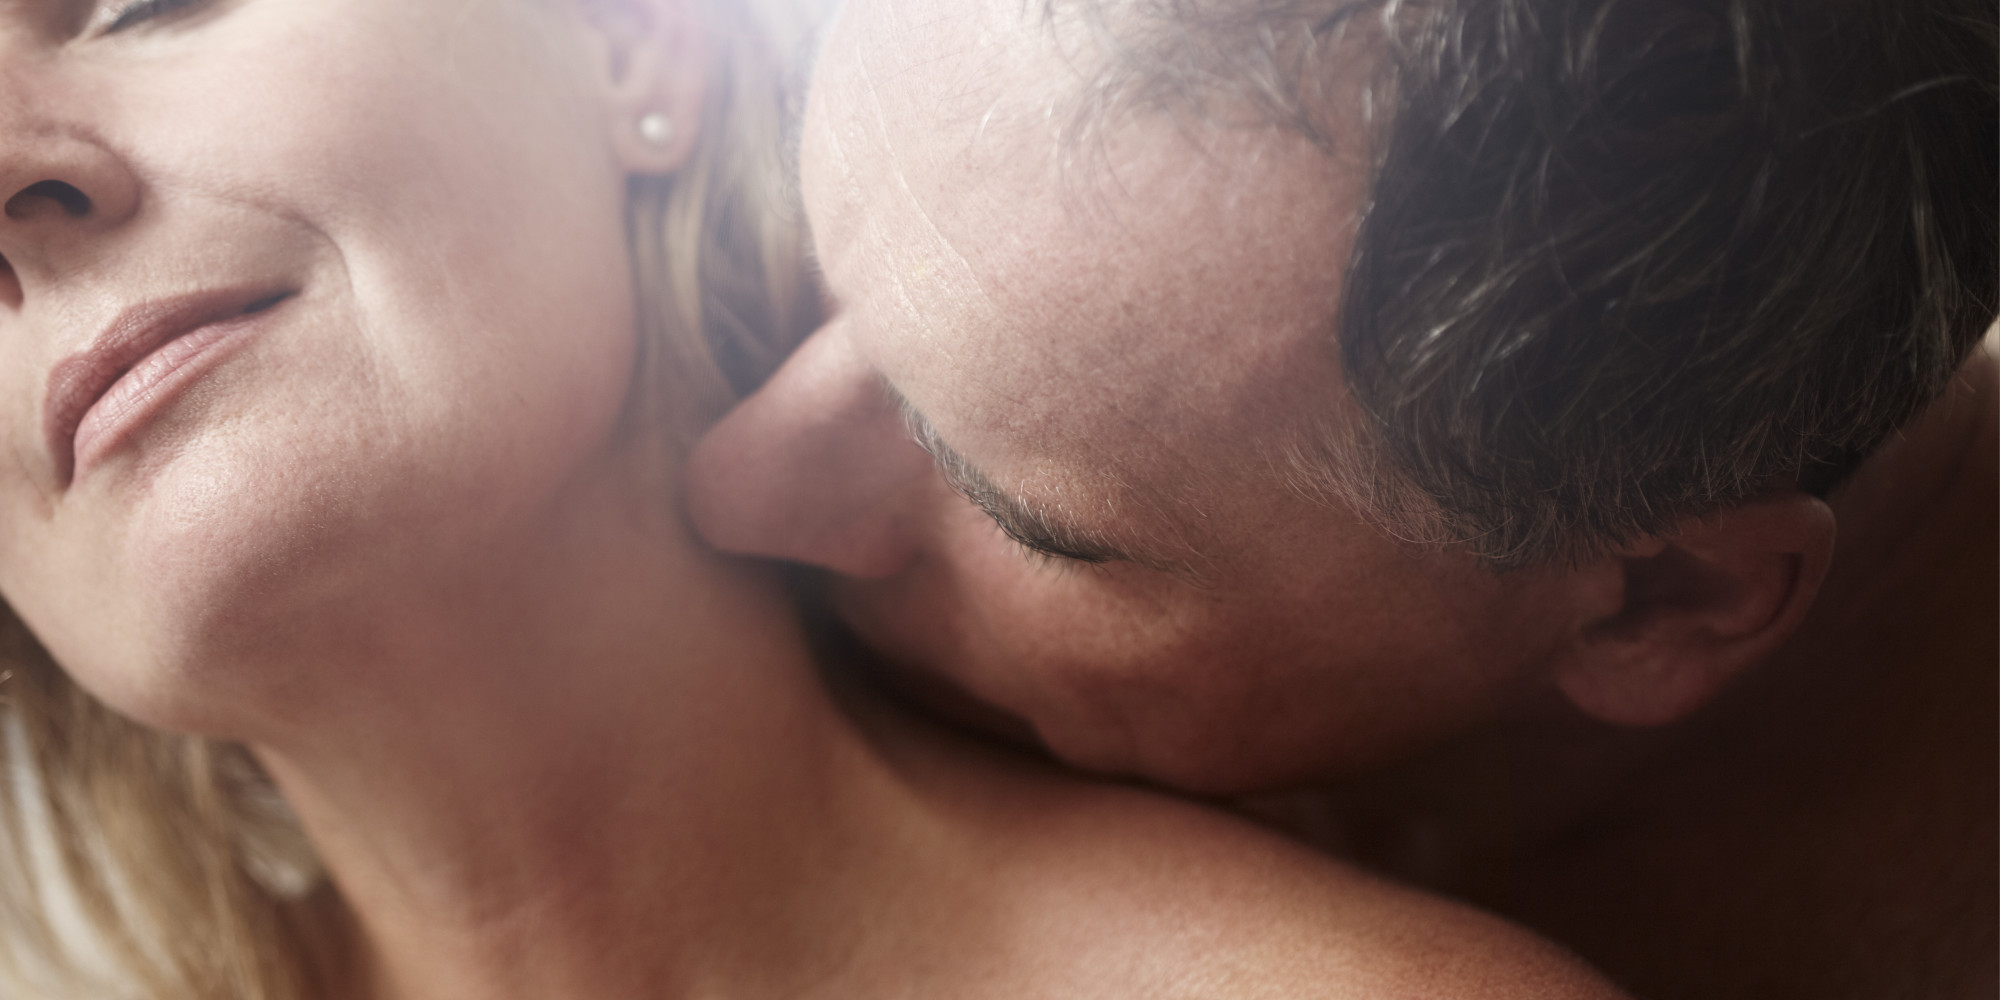 what makes a woman feel sexy, and what makes a man think that she is